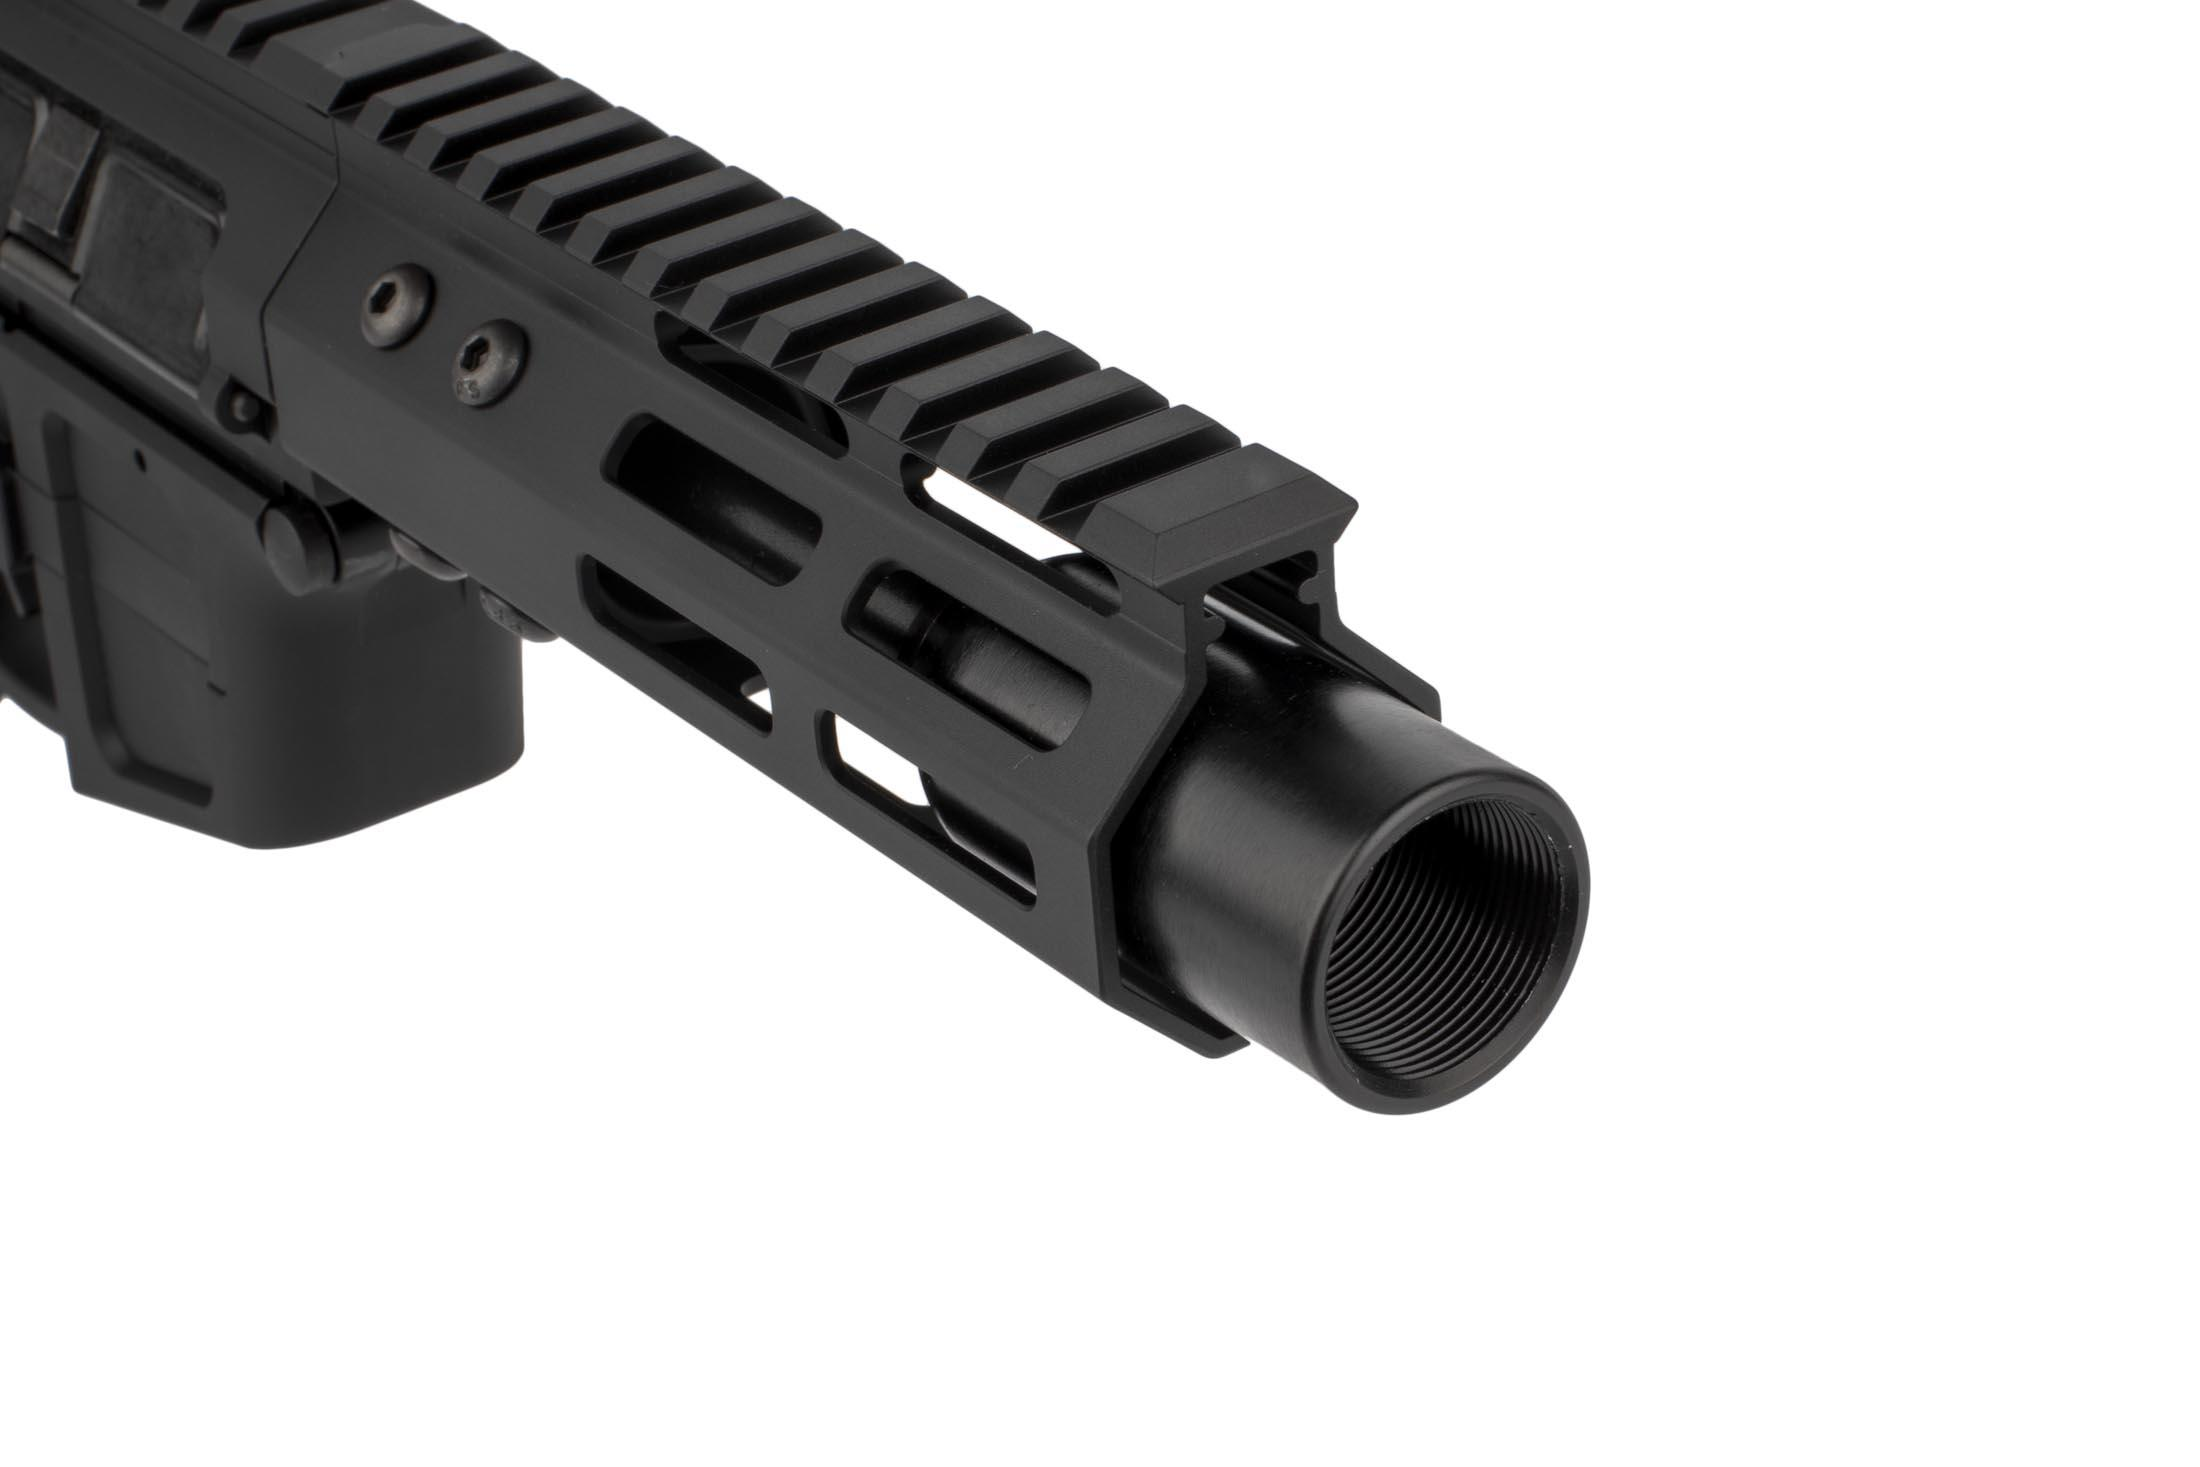 The Foxtrot Mike Products 9mm AR pistol features a blast diffuser muzzle device